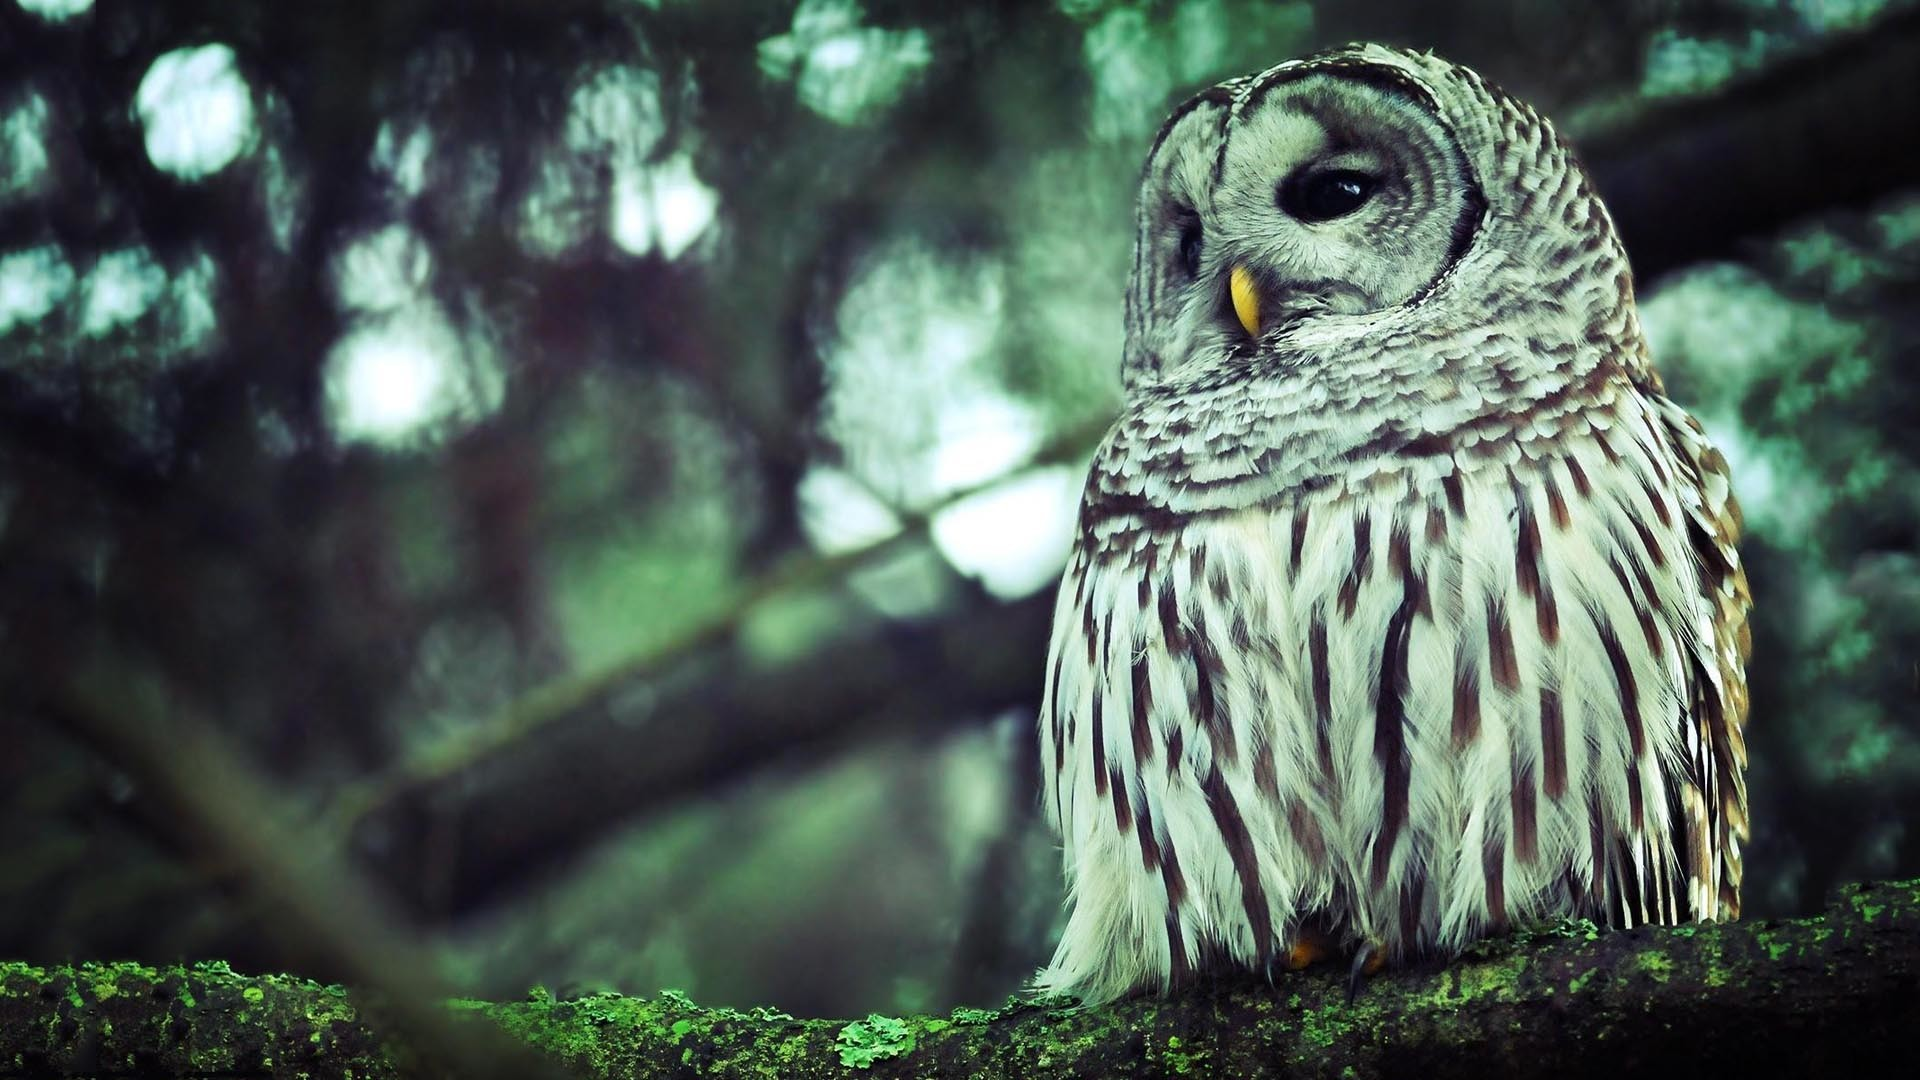 hd owl wallpaper (78+ images)